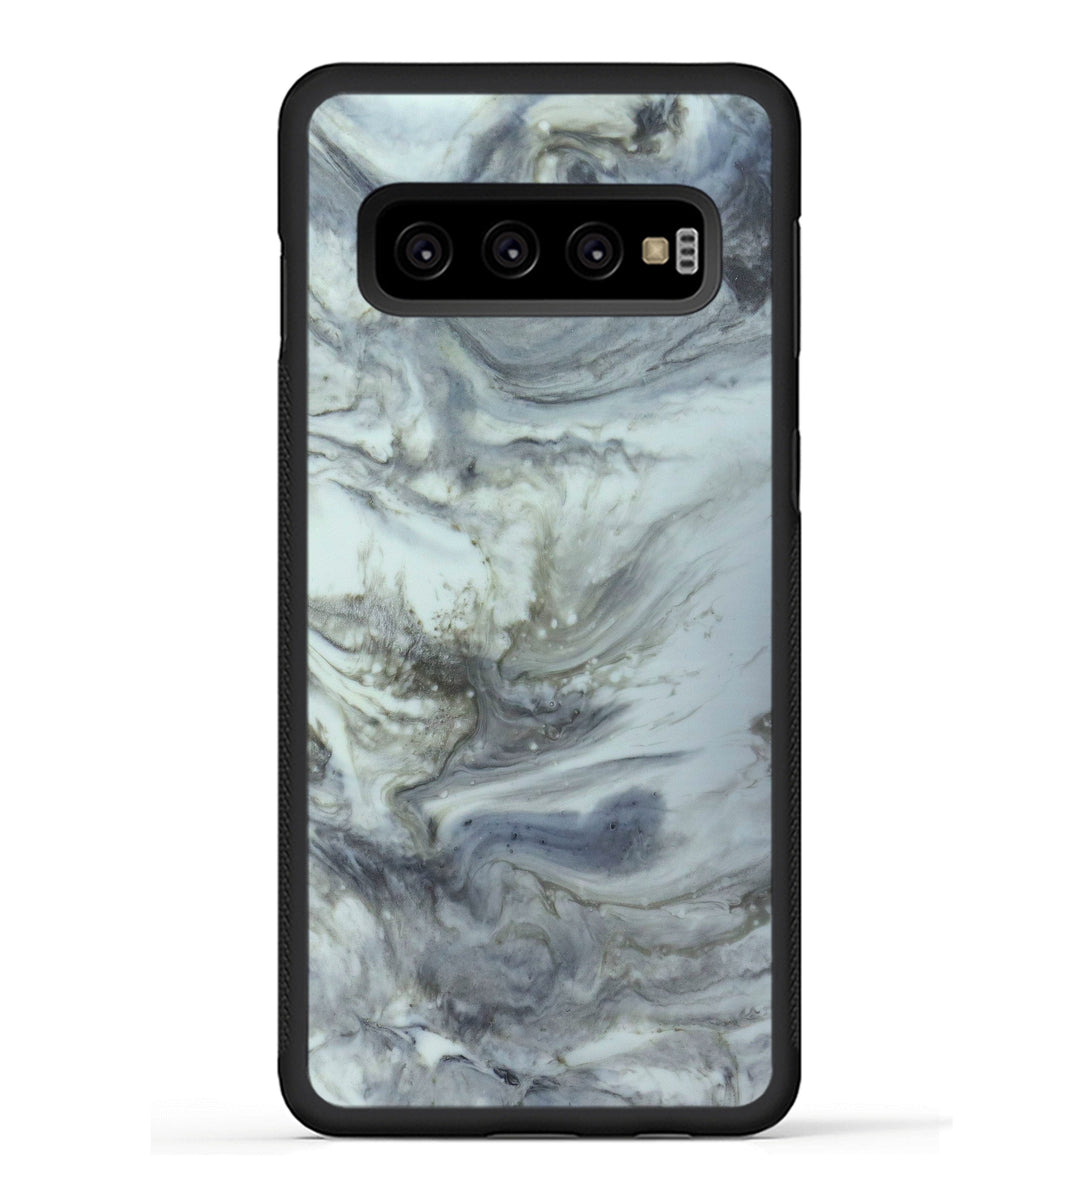 Galaxy S10 ResinArt Phone Case - Roselle (Black & White, 347832)